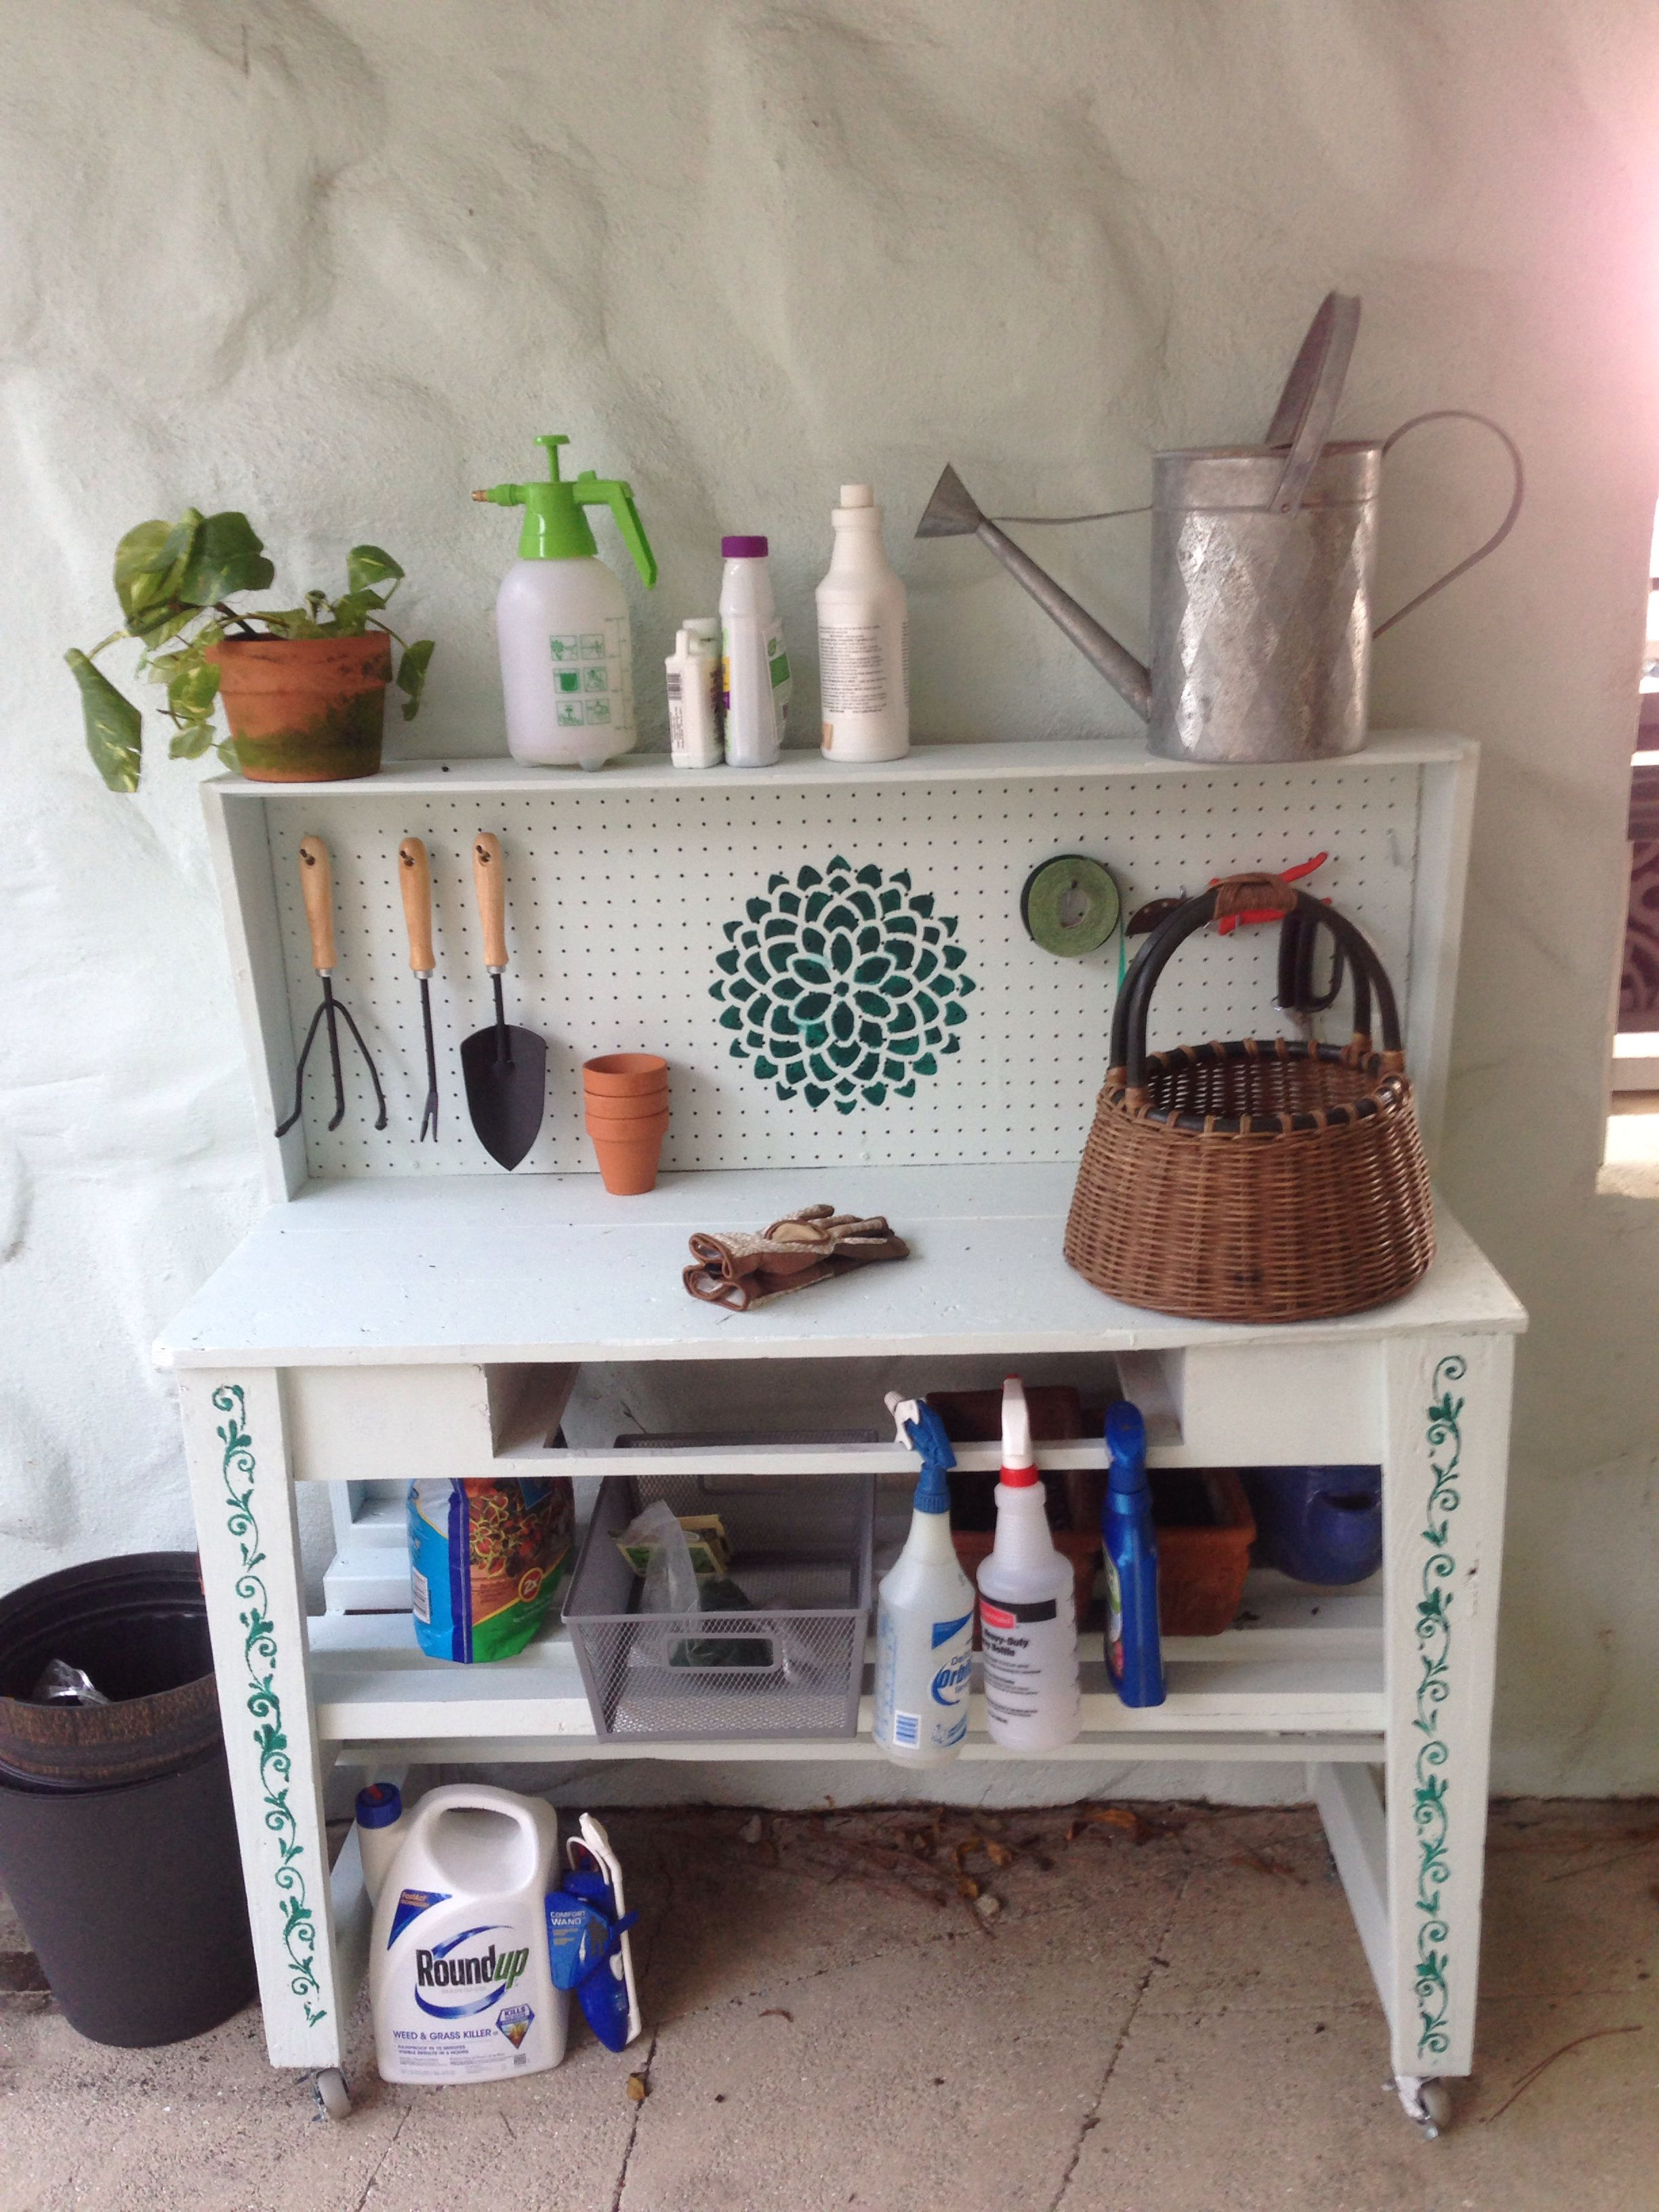 Potting bench. Rescued neighbor's work bench from rubbish. added vented shelves, painted and stenciled it and added hooks for organizing tools.